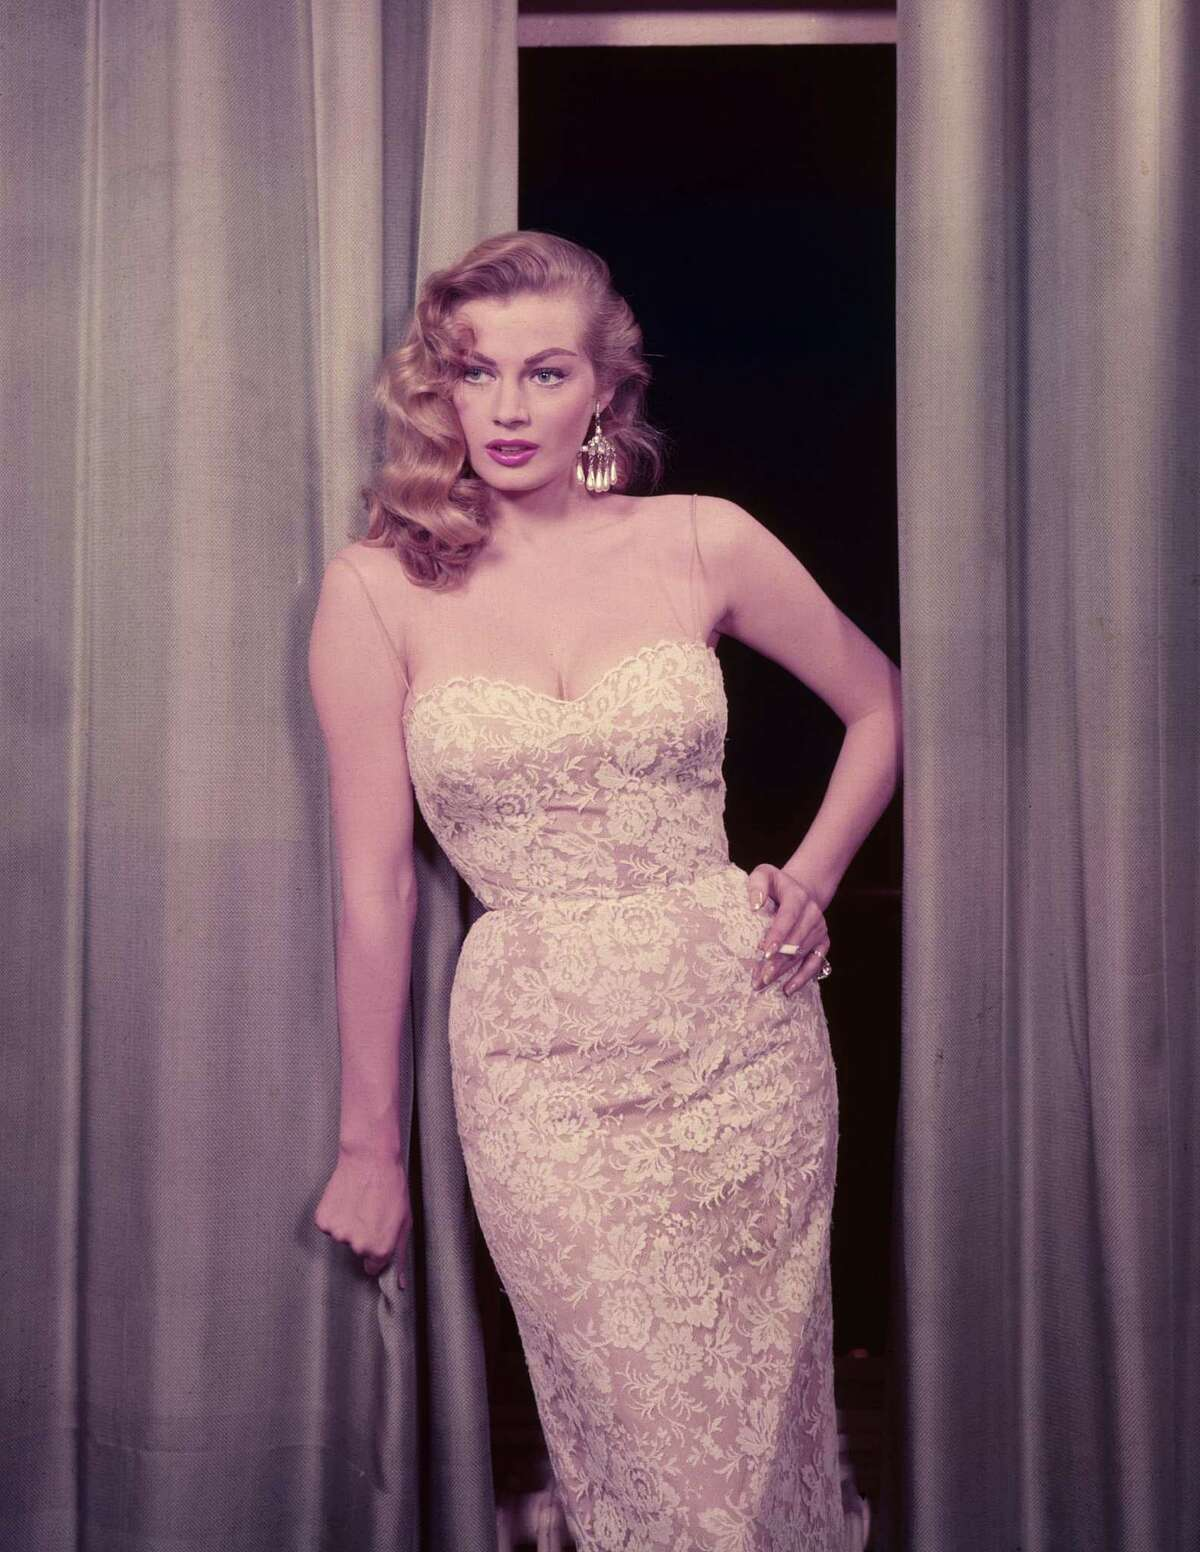 (FILE PHOTO) Swedish actress Anita Ekberg known for her role in the 1960 movie La Dolce Vita has died in Rome today after a series of illnesses. circa 1955: The Swedish actress Anita Ekberg, known as 'The Iceberg'. (Photo by Hulton Archive/Getty Images)